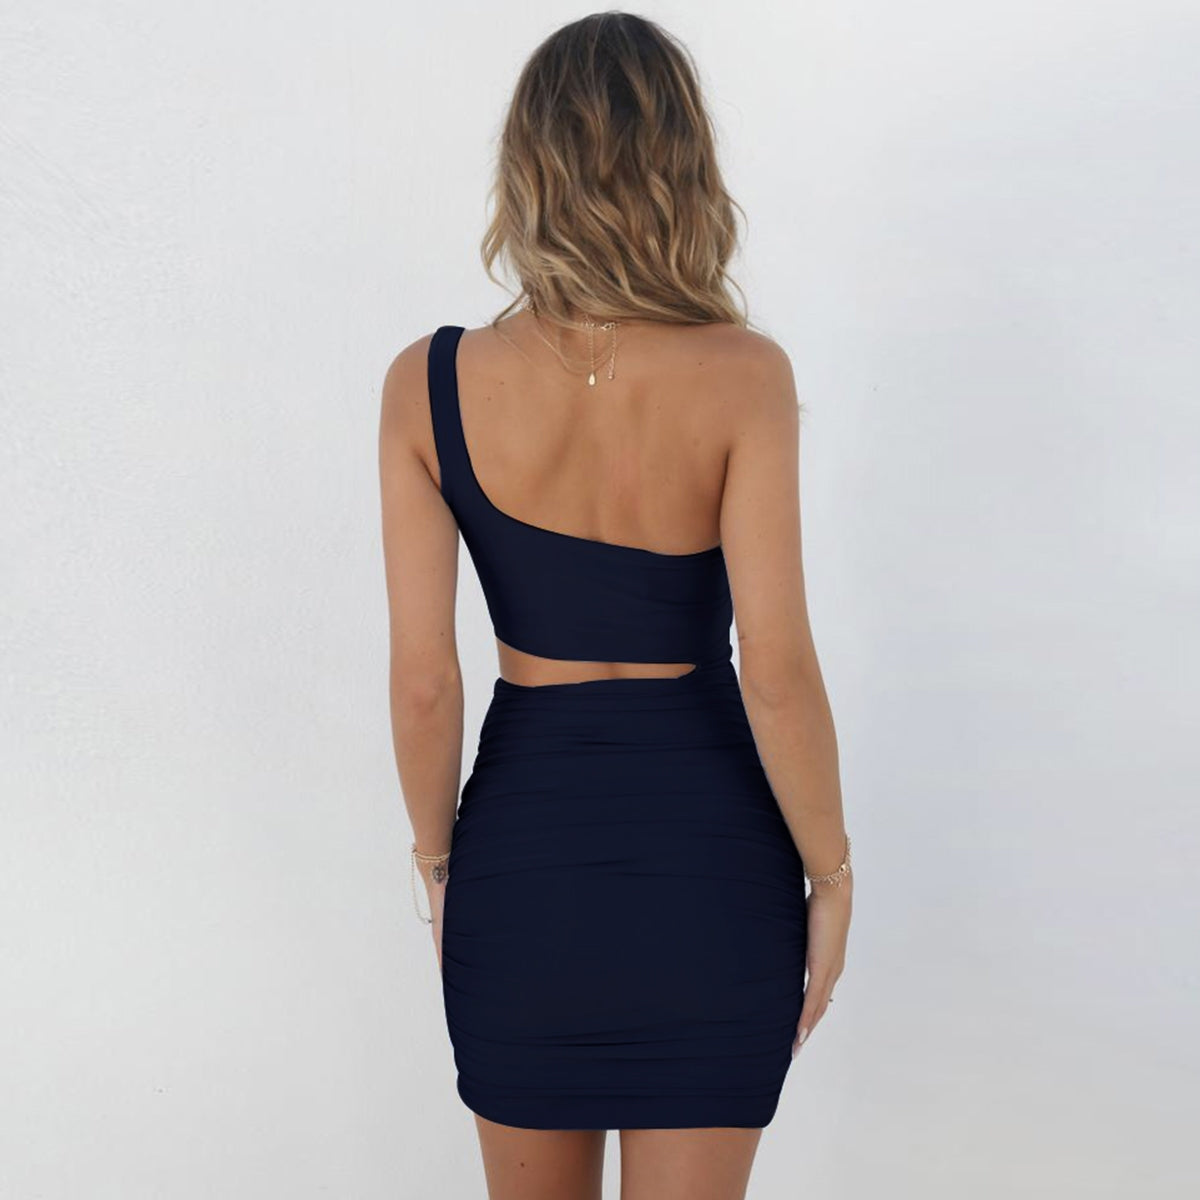 Maria - Bodycon Dress